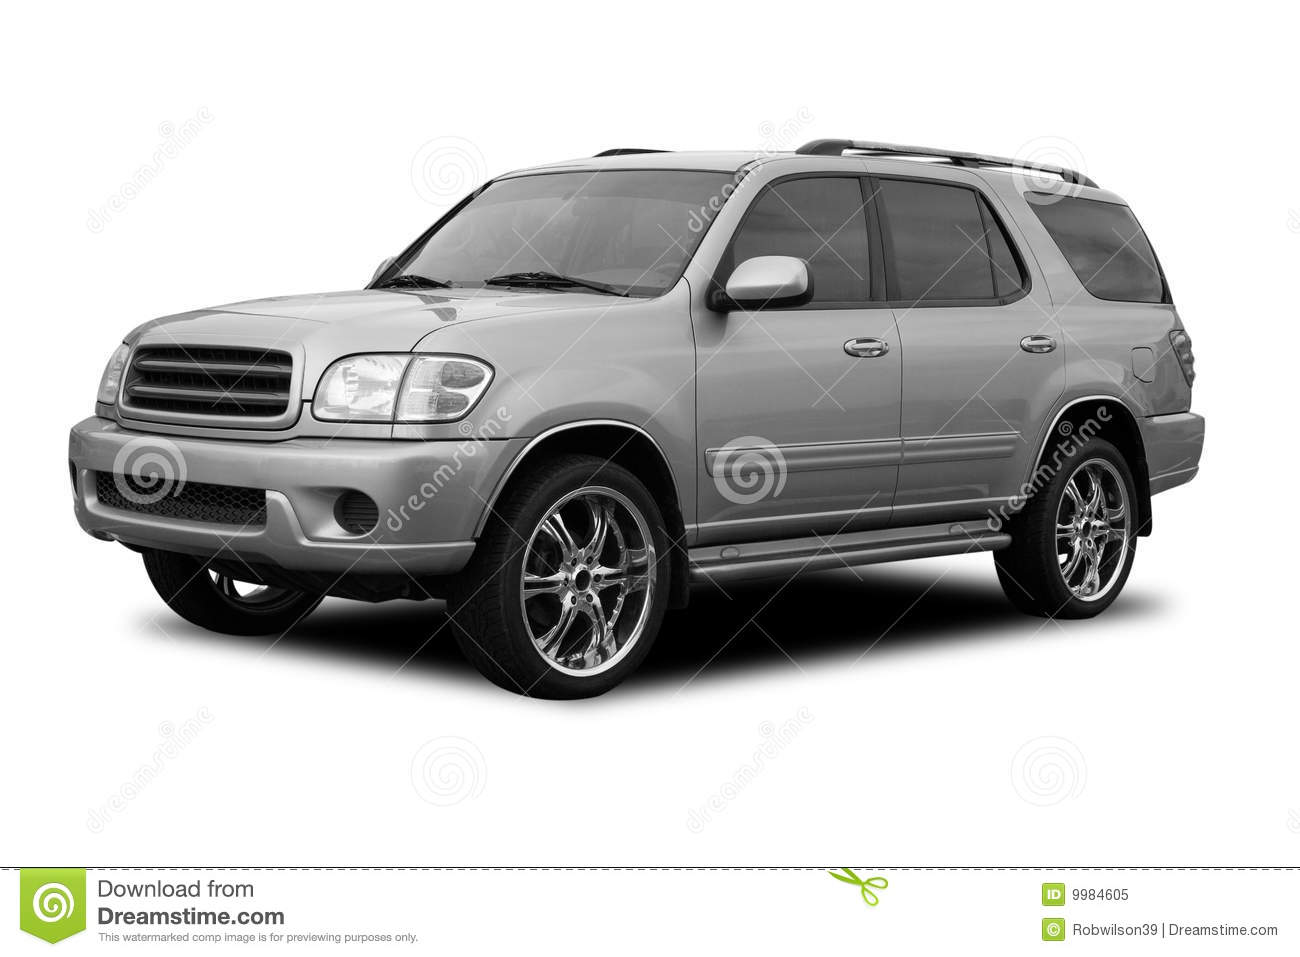 Silver Suv Stock Image Of Attractive Motor Fancy 9984605 Off Road Toyota Sequoia White With Decorative Wheels Isolated On A Background